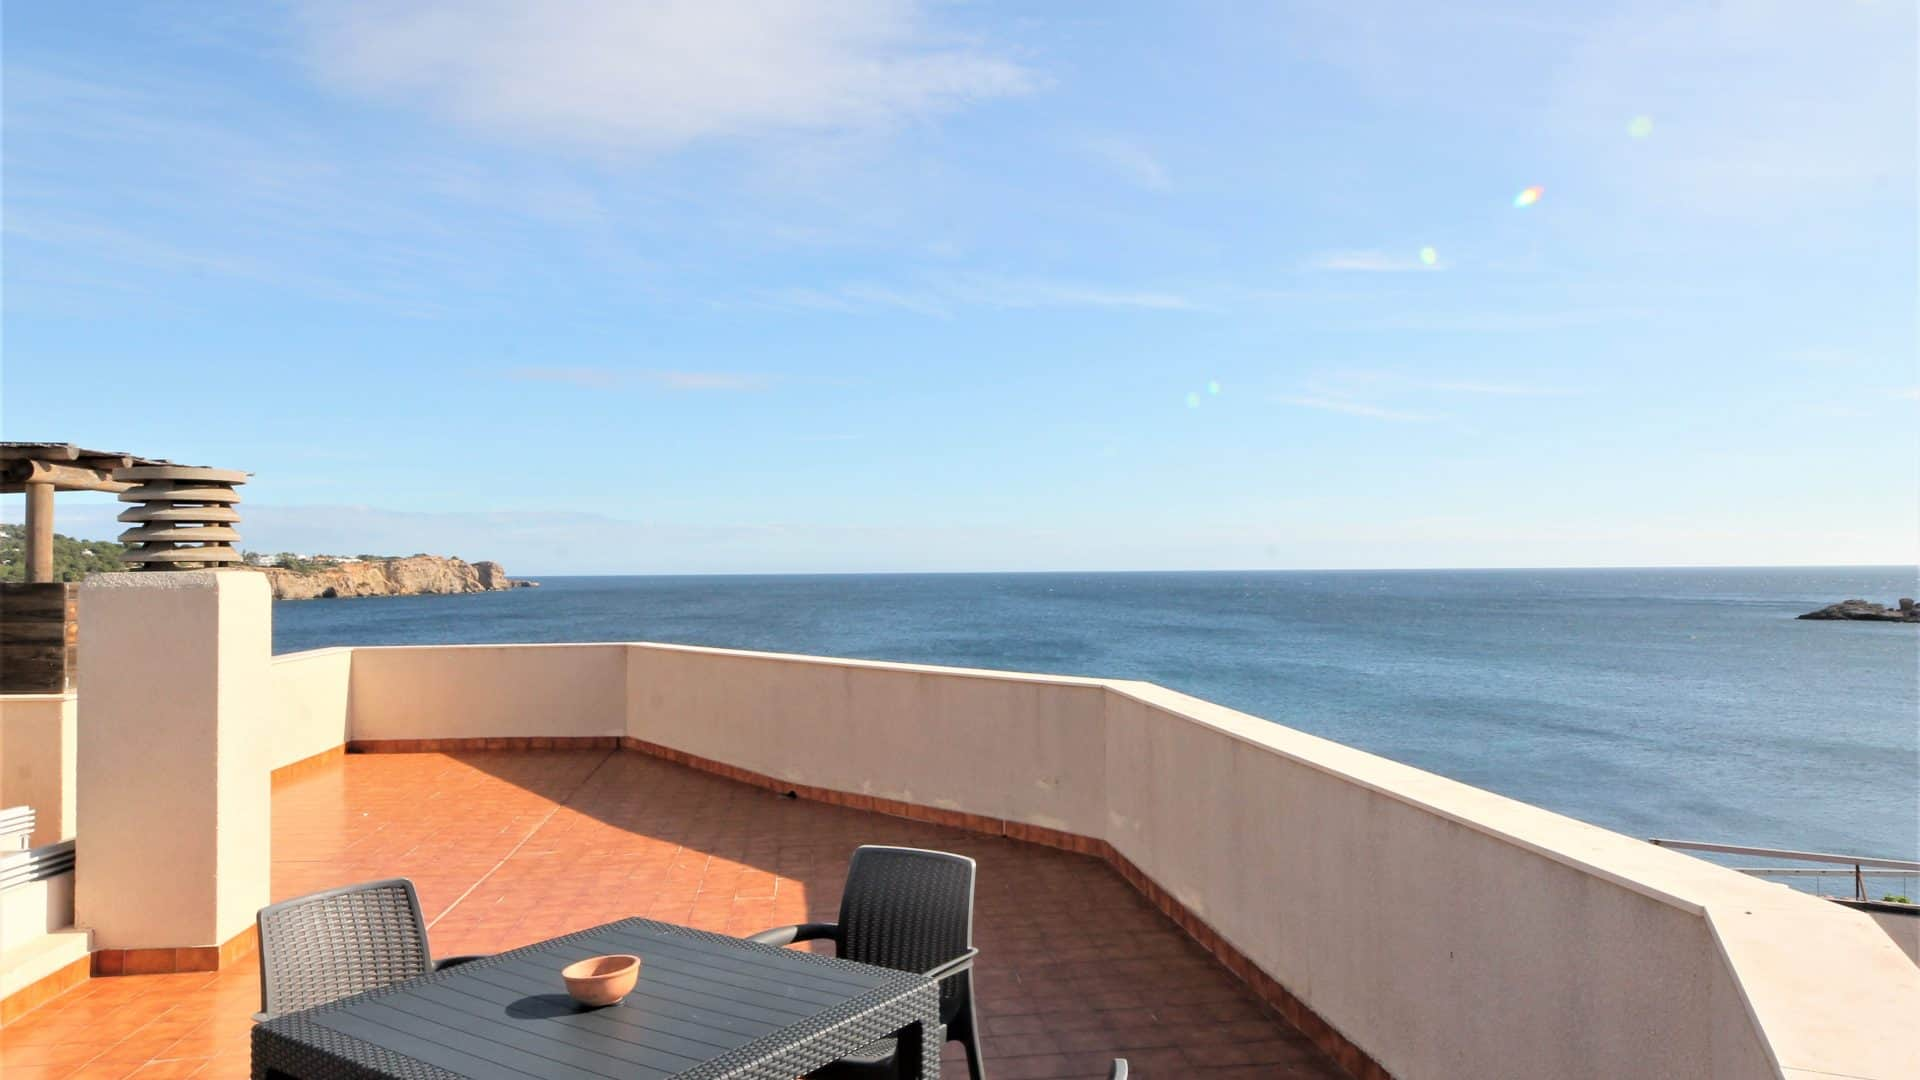 Rent twin house Talamanca with swimming pool on the seafront